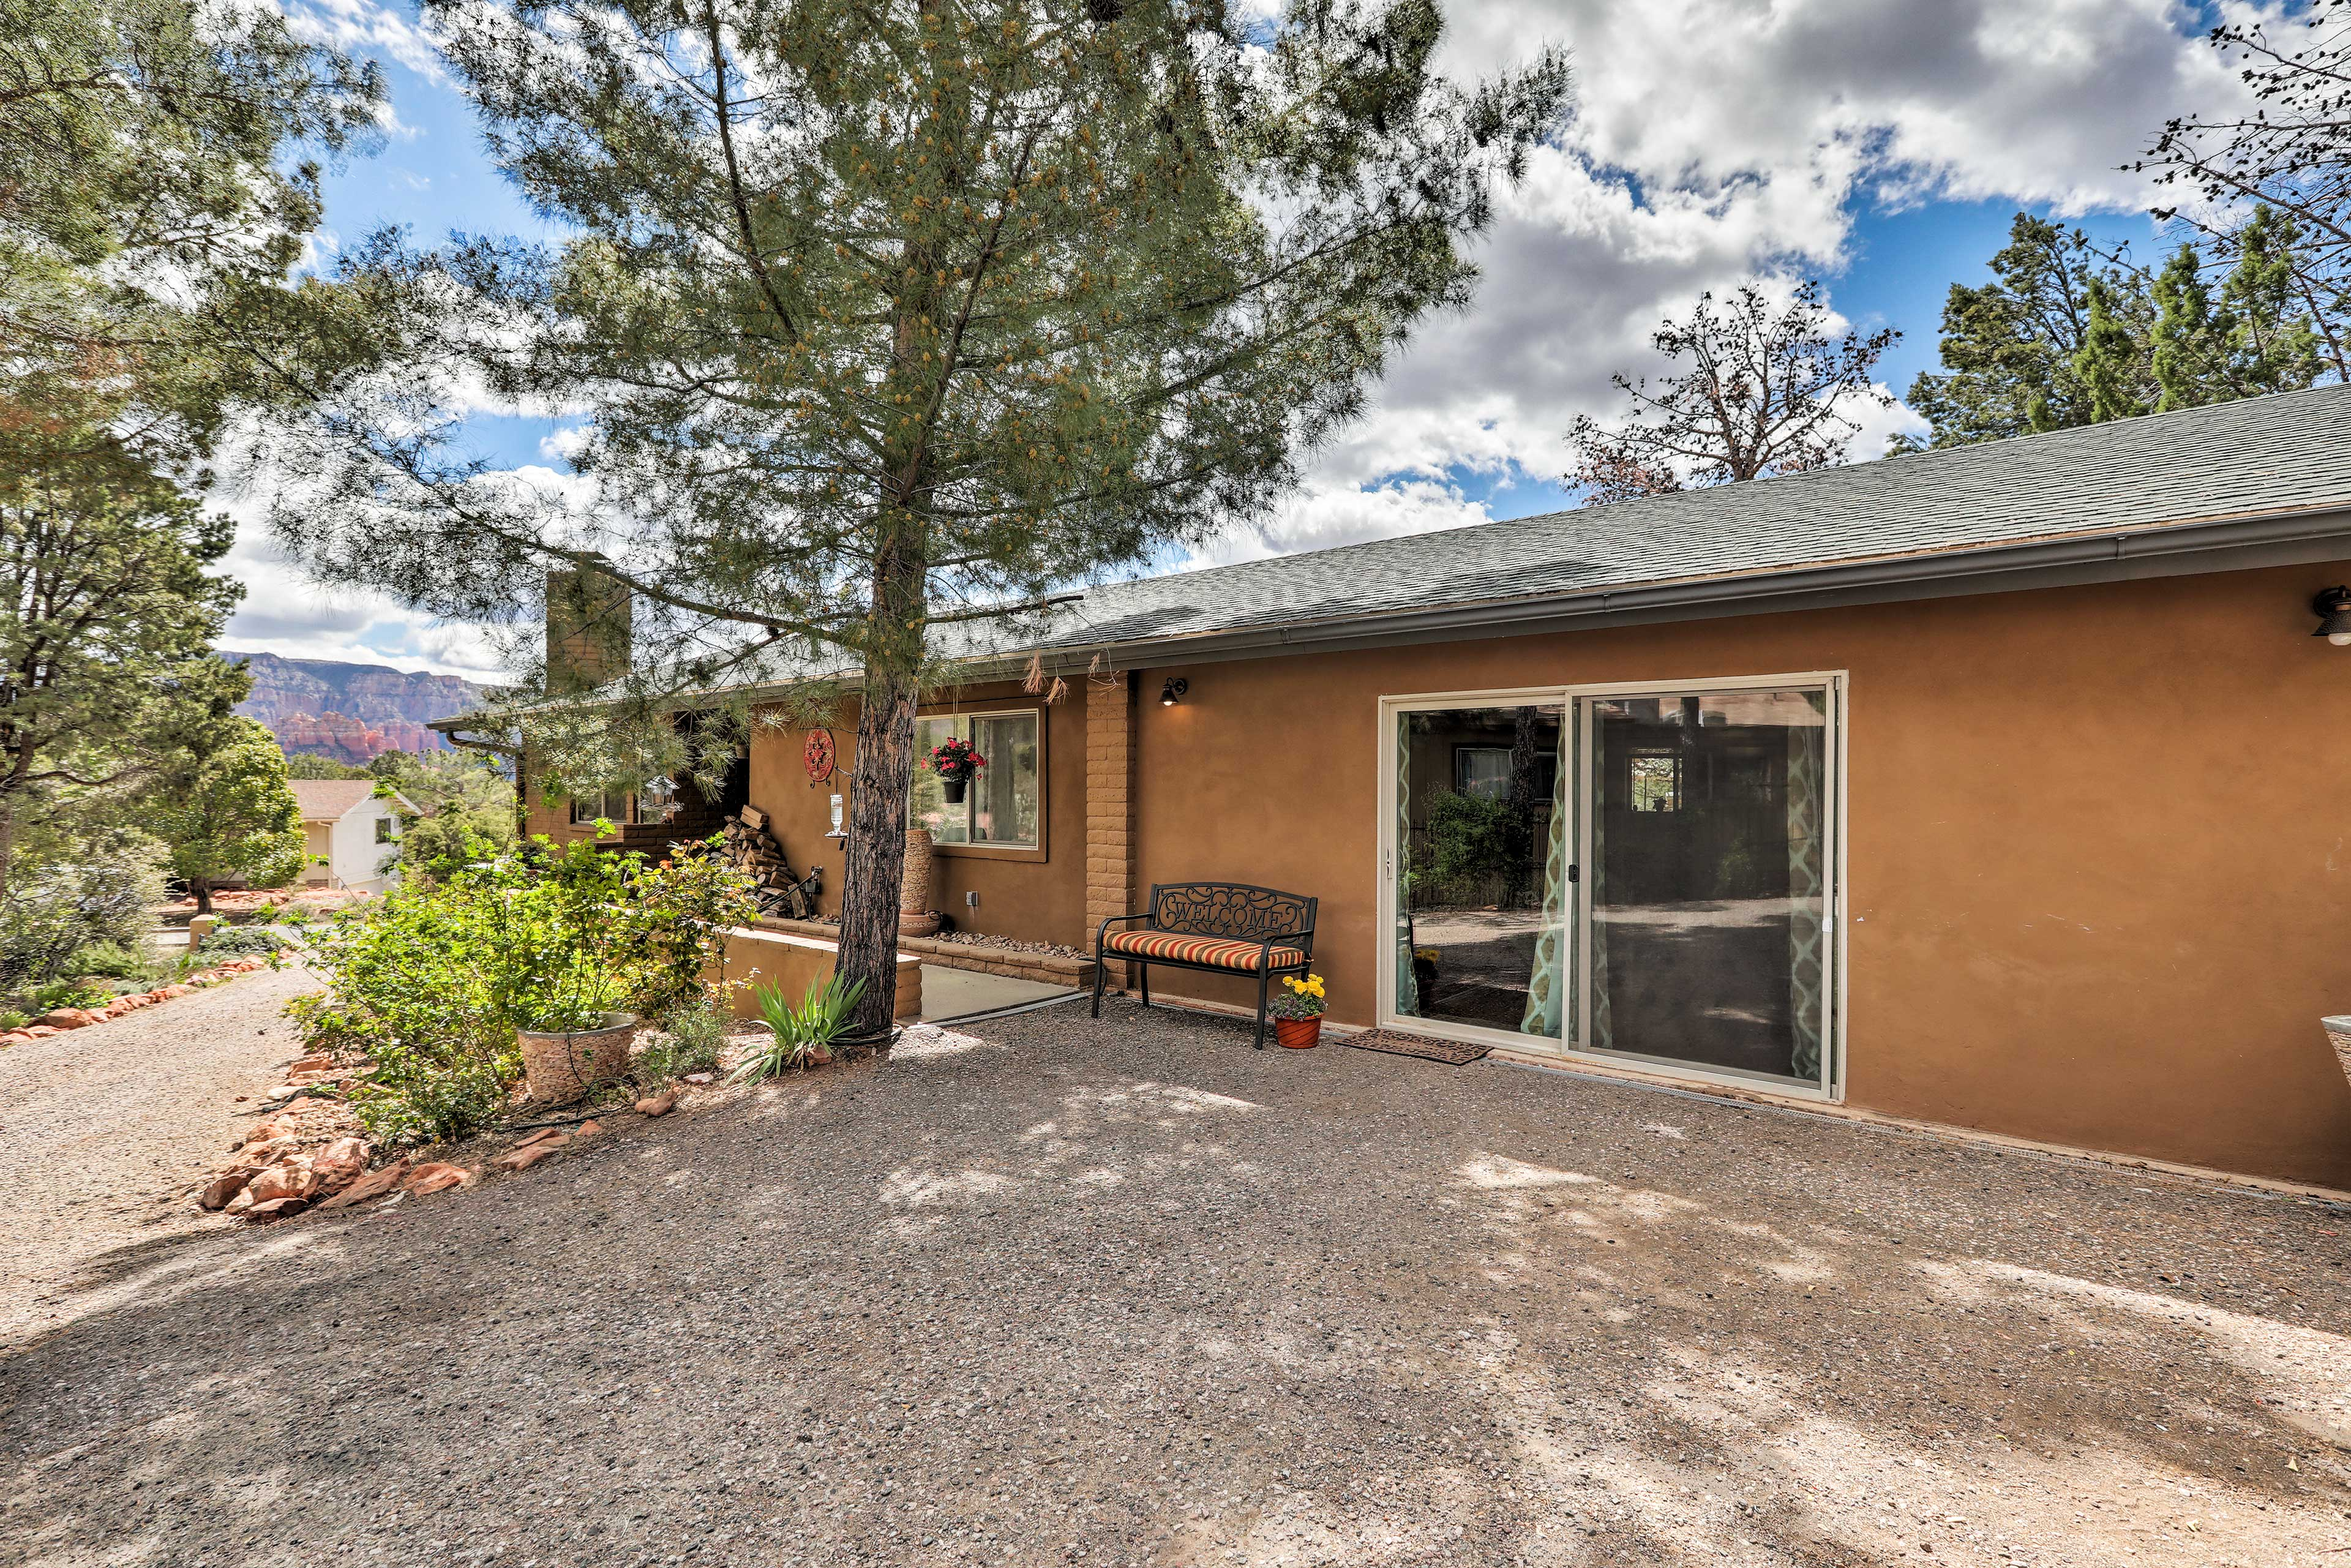 Enjoy views of & proximity to stunning red rock formations!